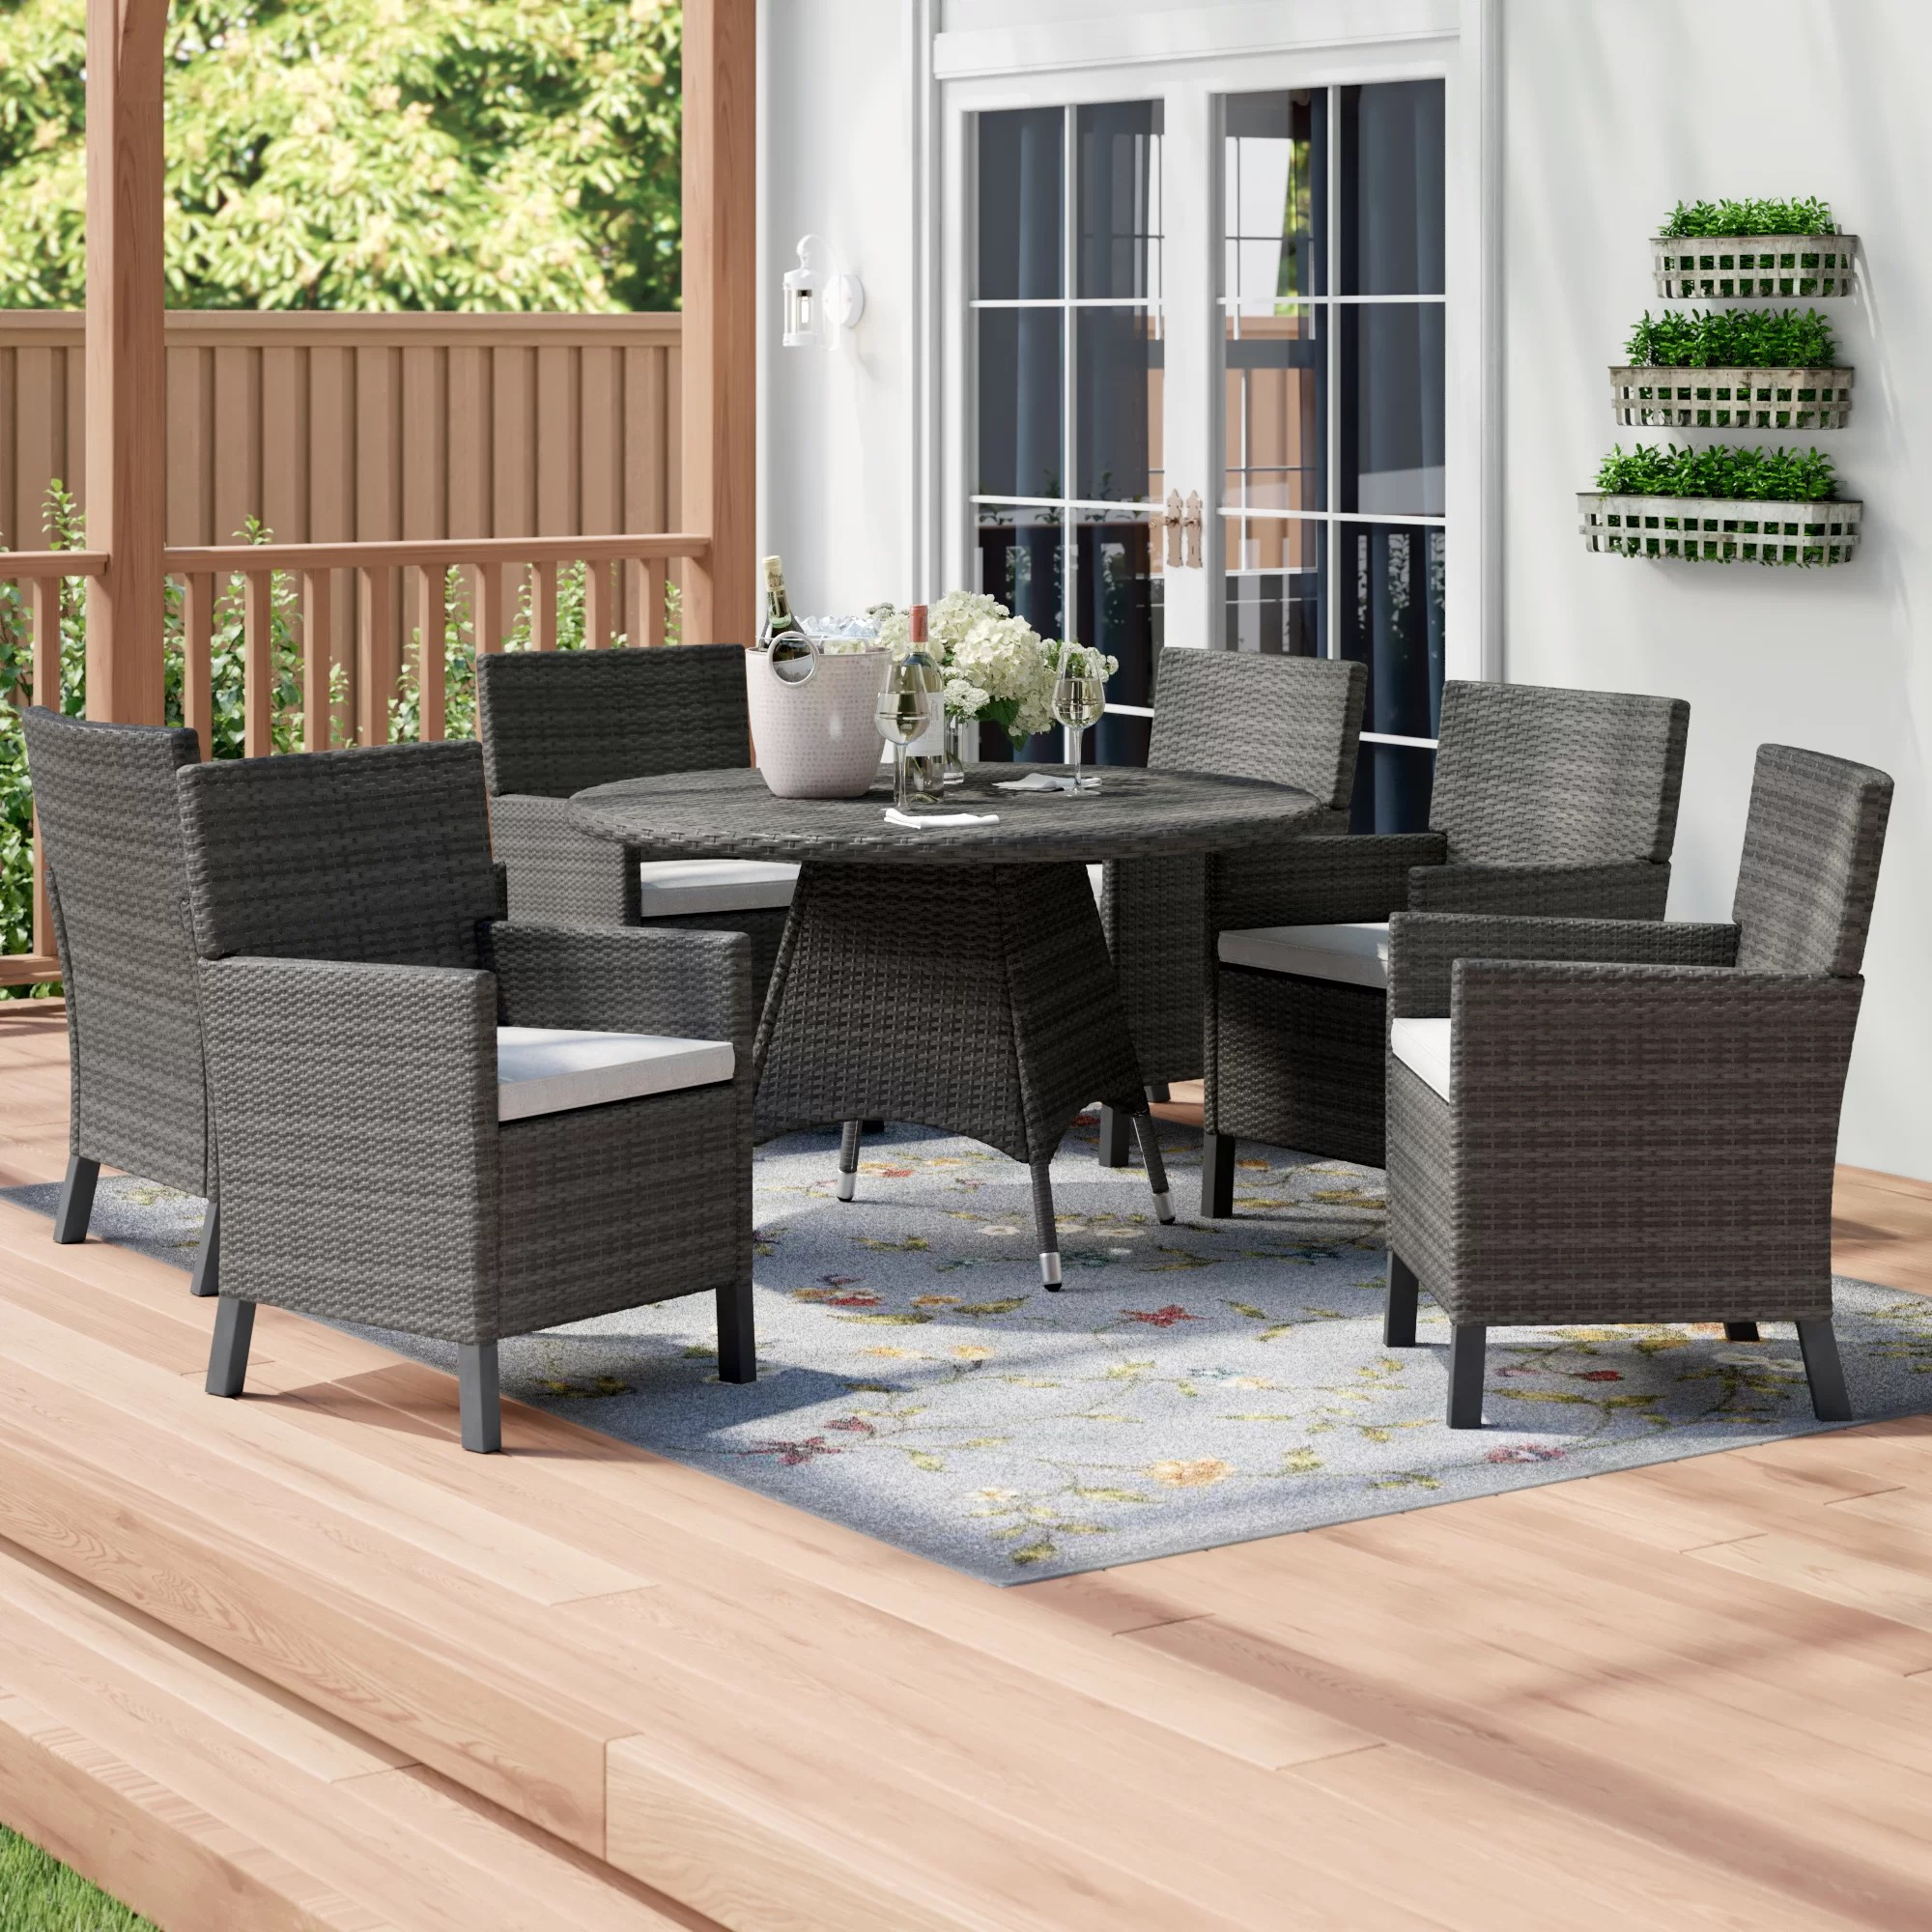 Outdoor Wicker Dining Chairs Argueta Outdoor Wicker 5 Piece Dining Set With Cushions